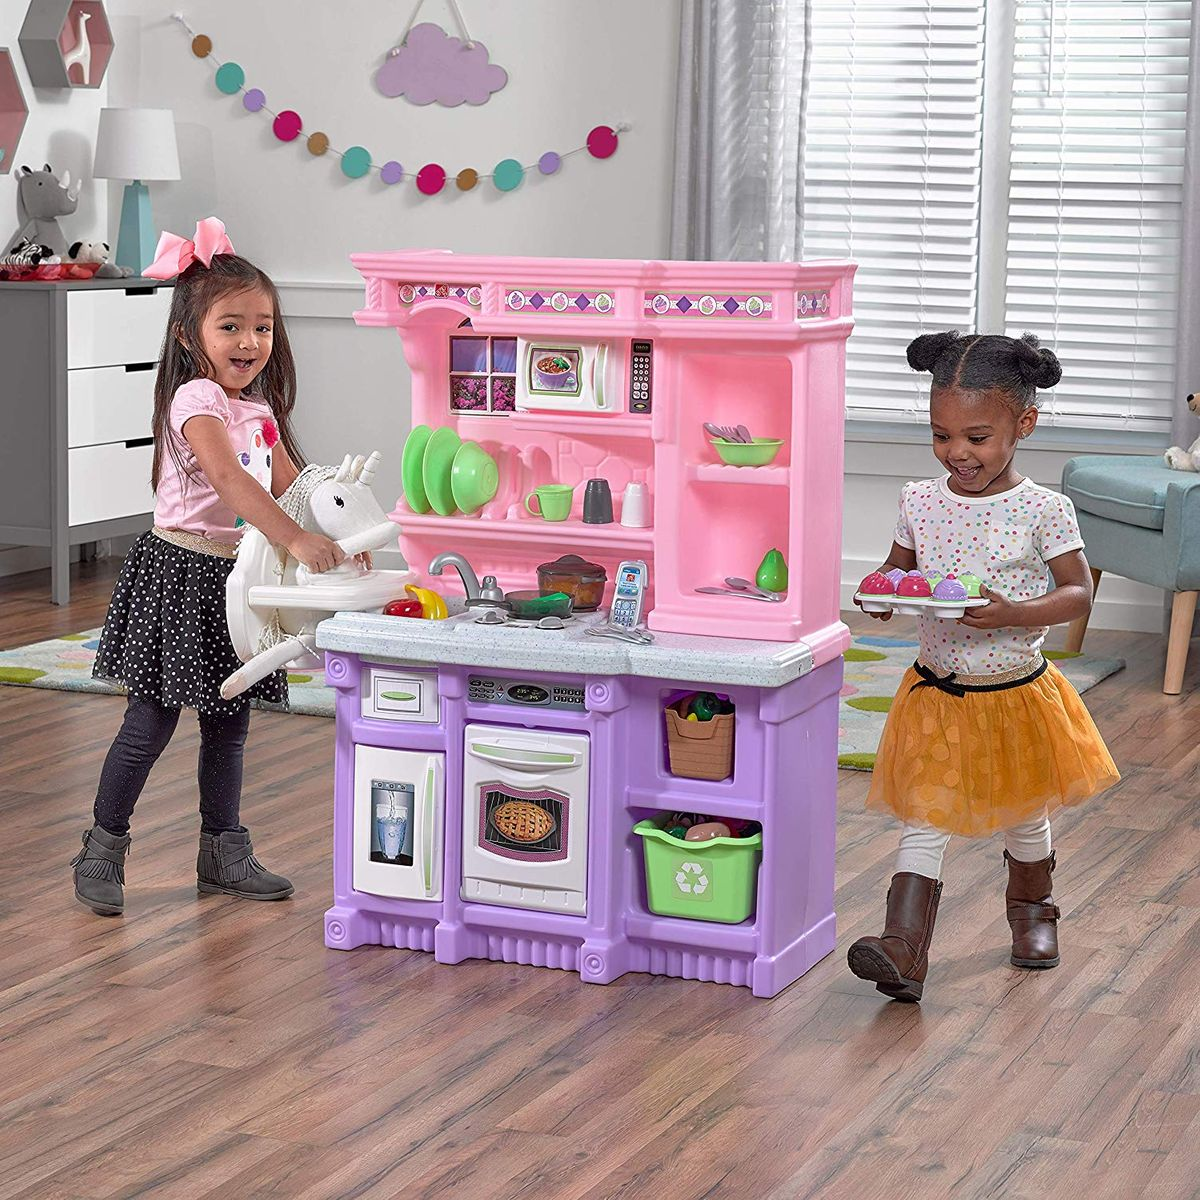 10 Best Toy Kitchen Sets 2020 The Strategist New York Magazine